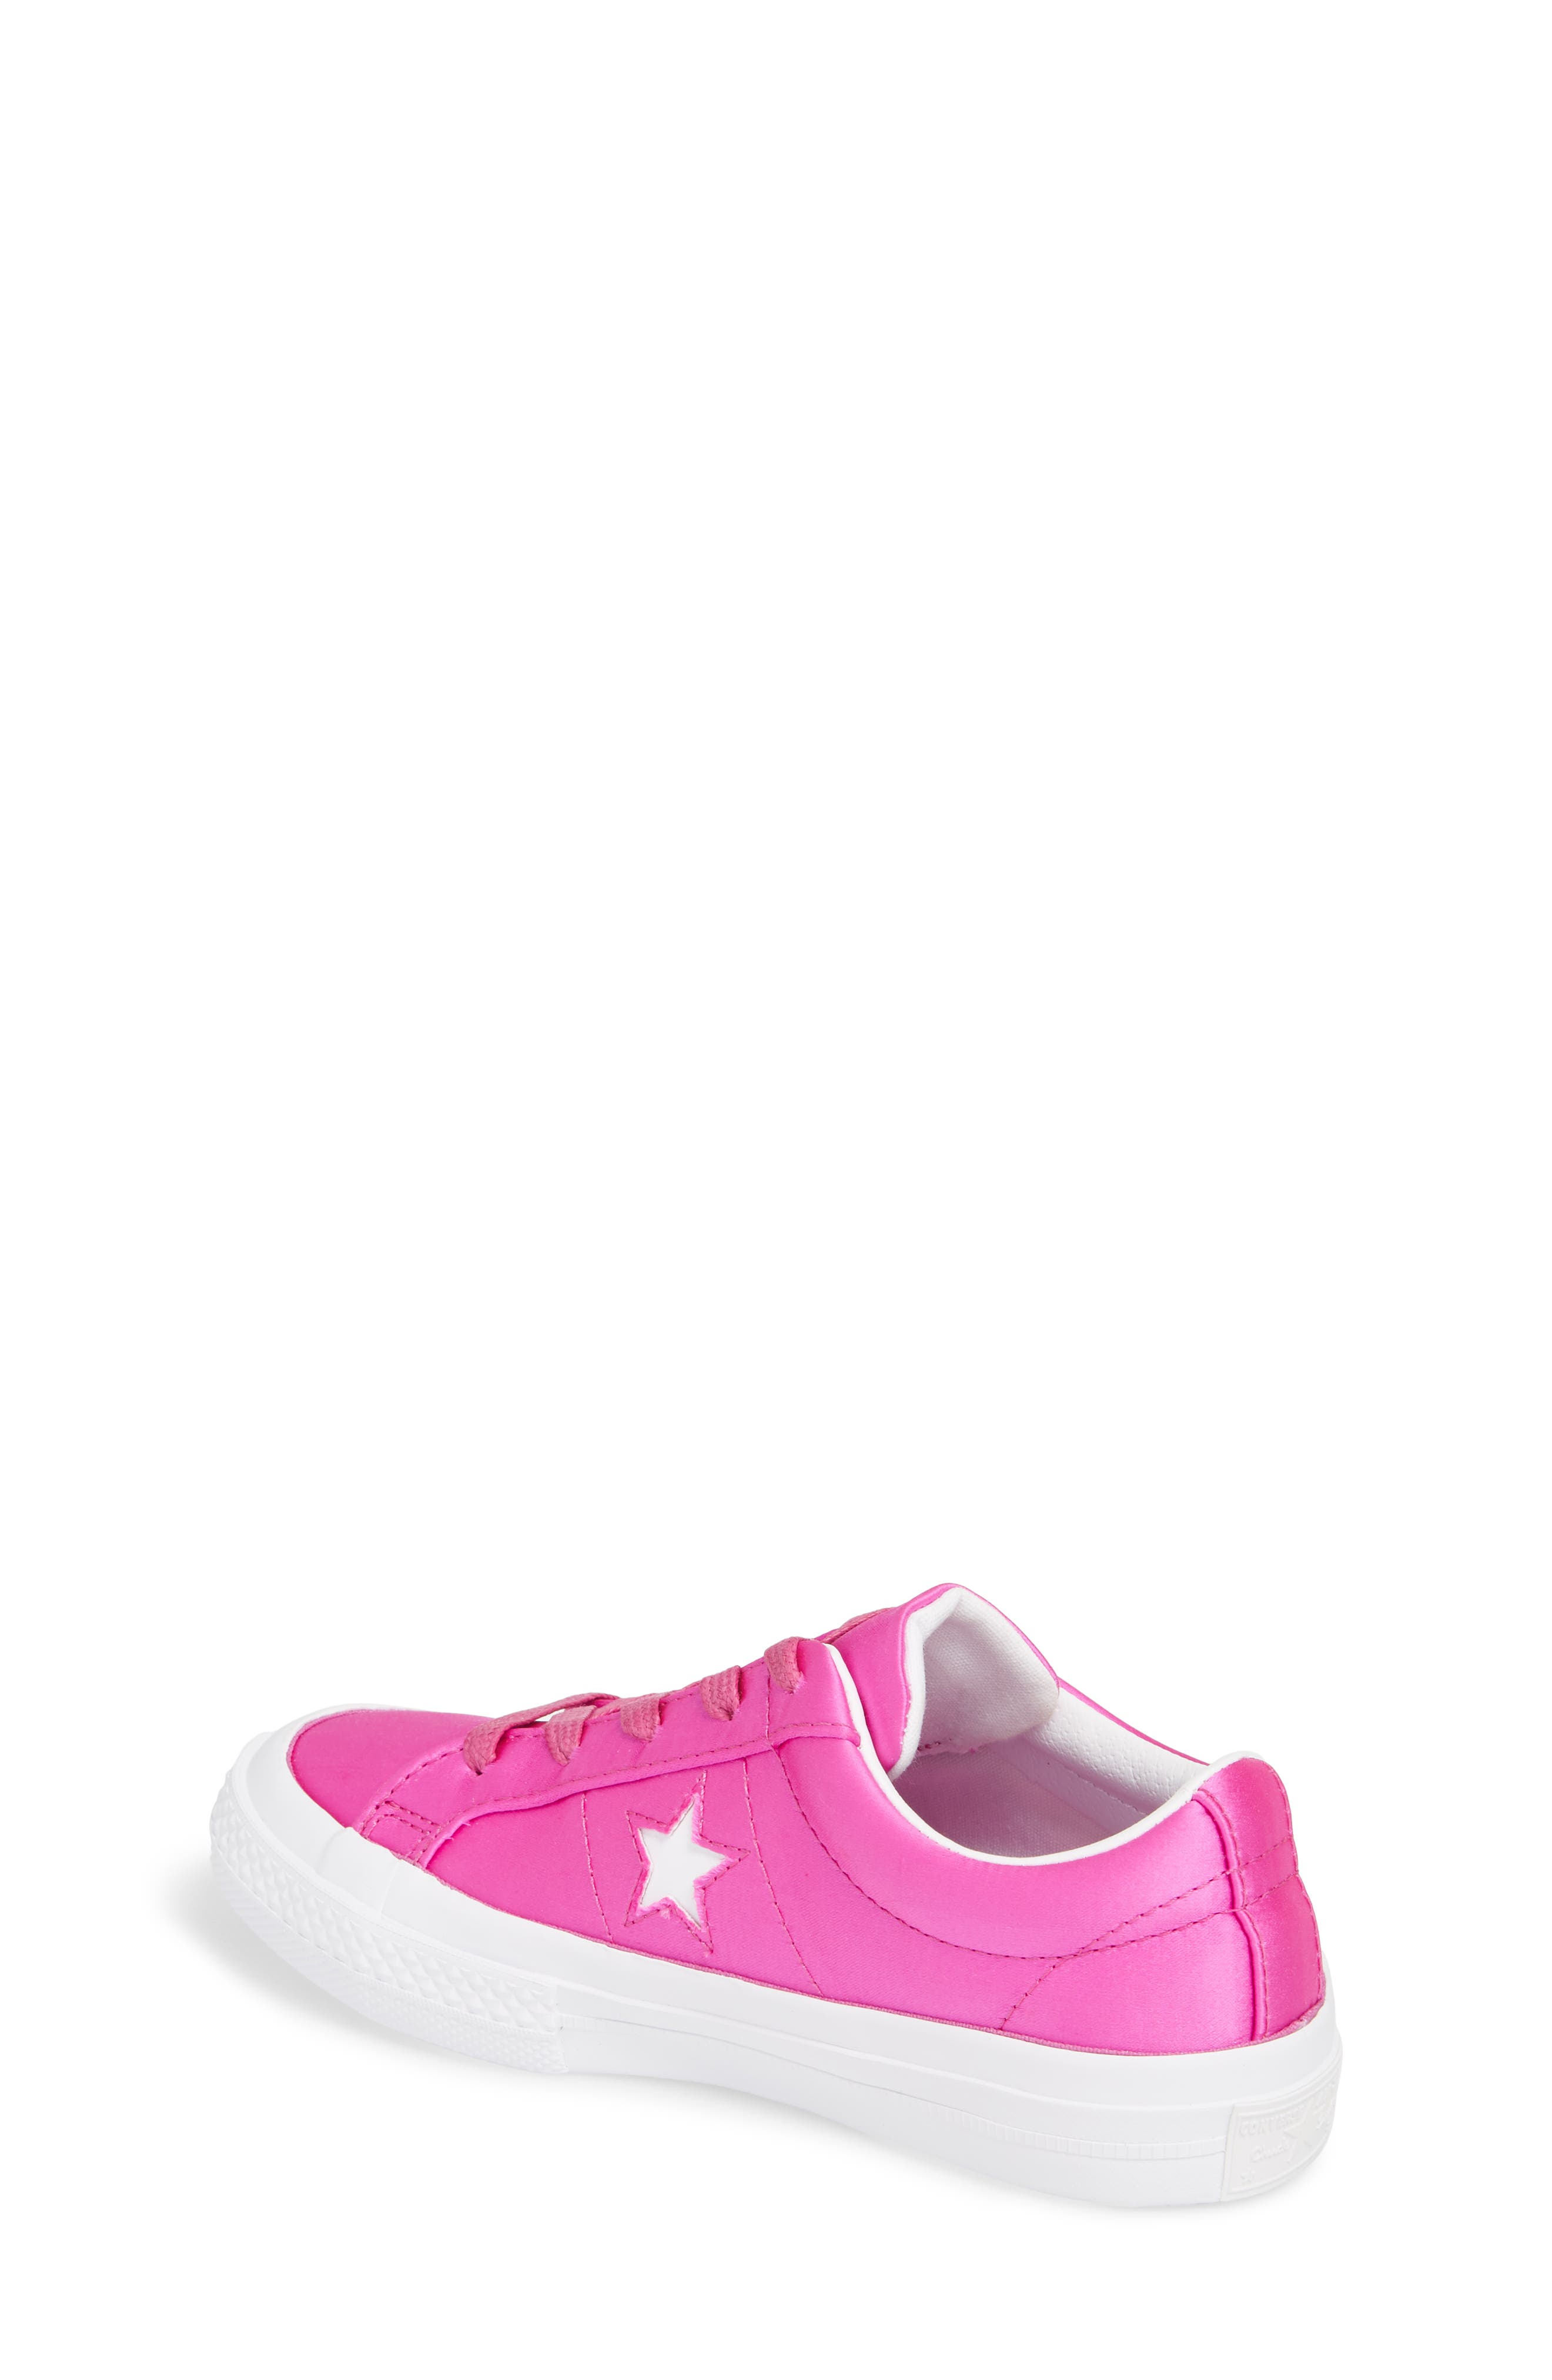 Chuck Taylor<sup>®</sup> All Star<sup>®</sup> One Star Satin Low Top Sneaker,                             Alternate thumbnail 2, color,                             Hyper Magenta